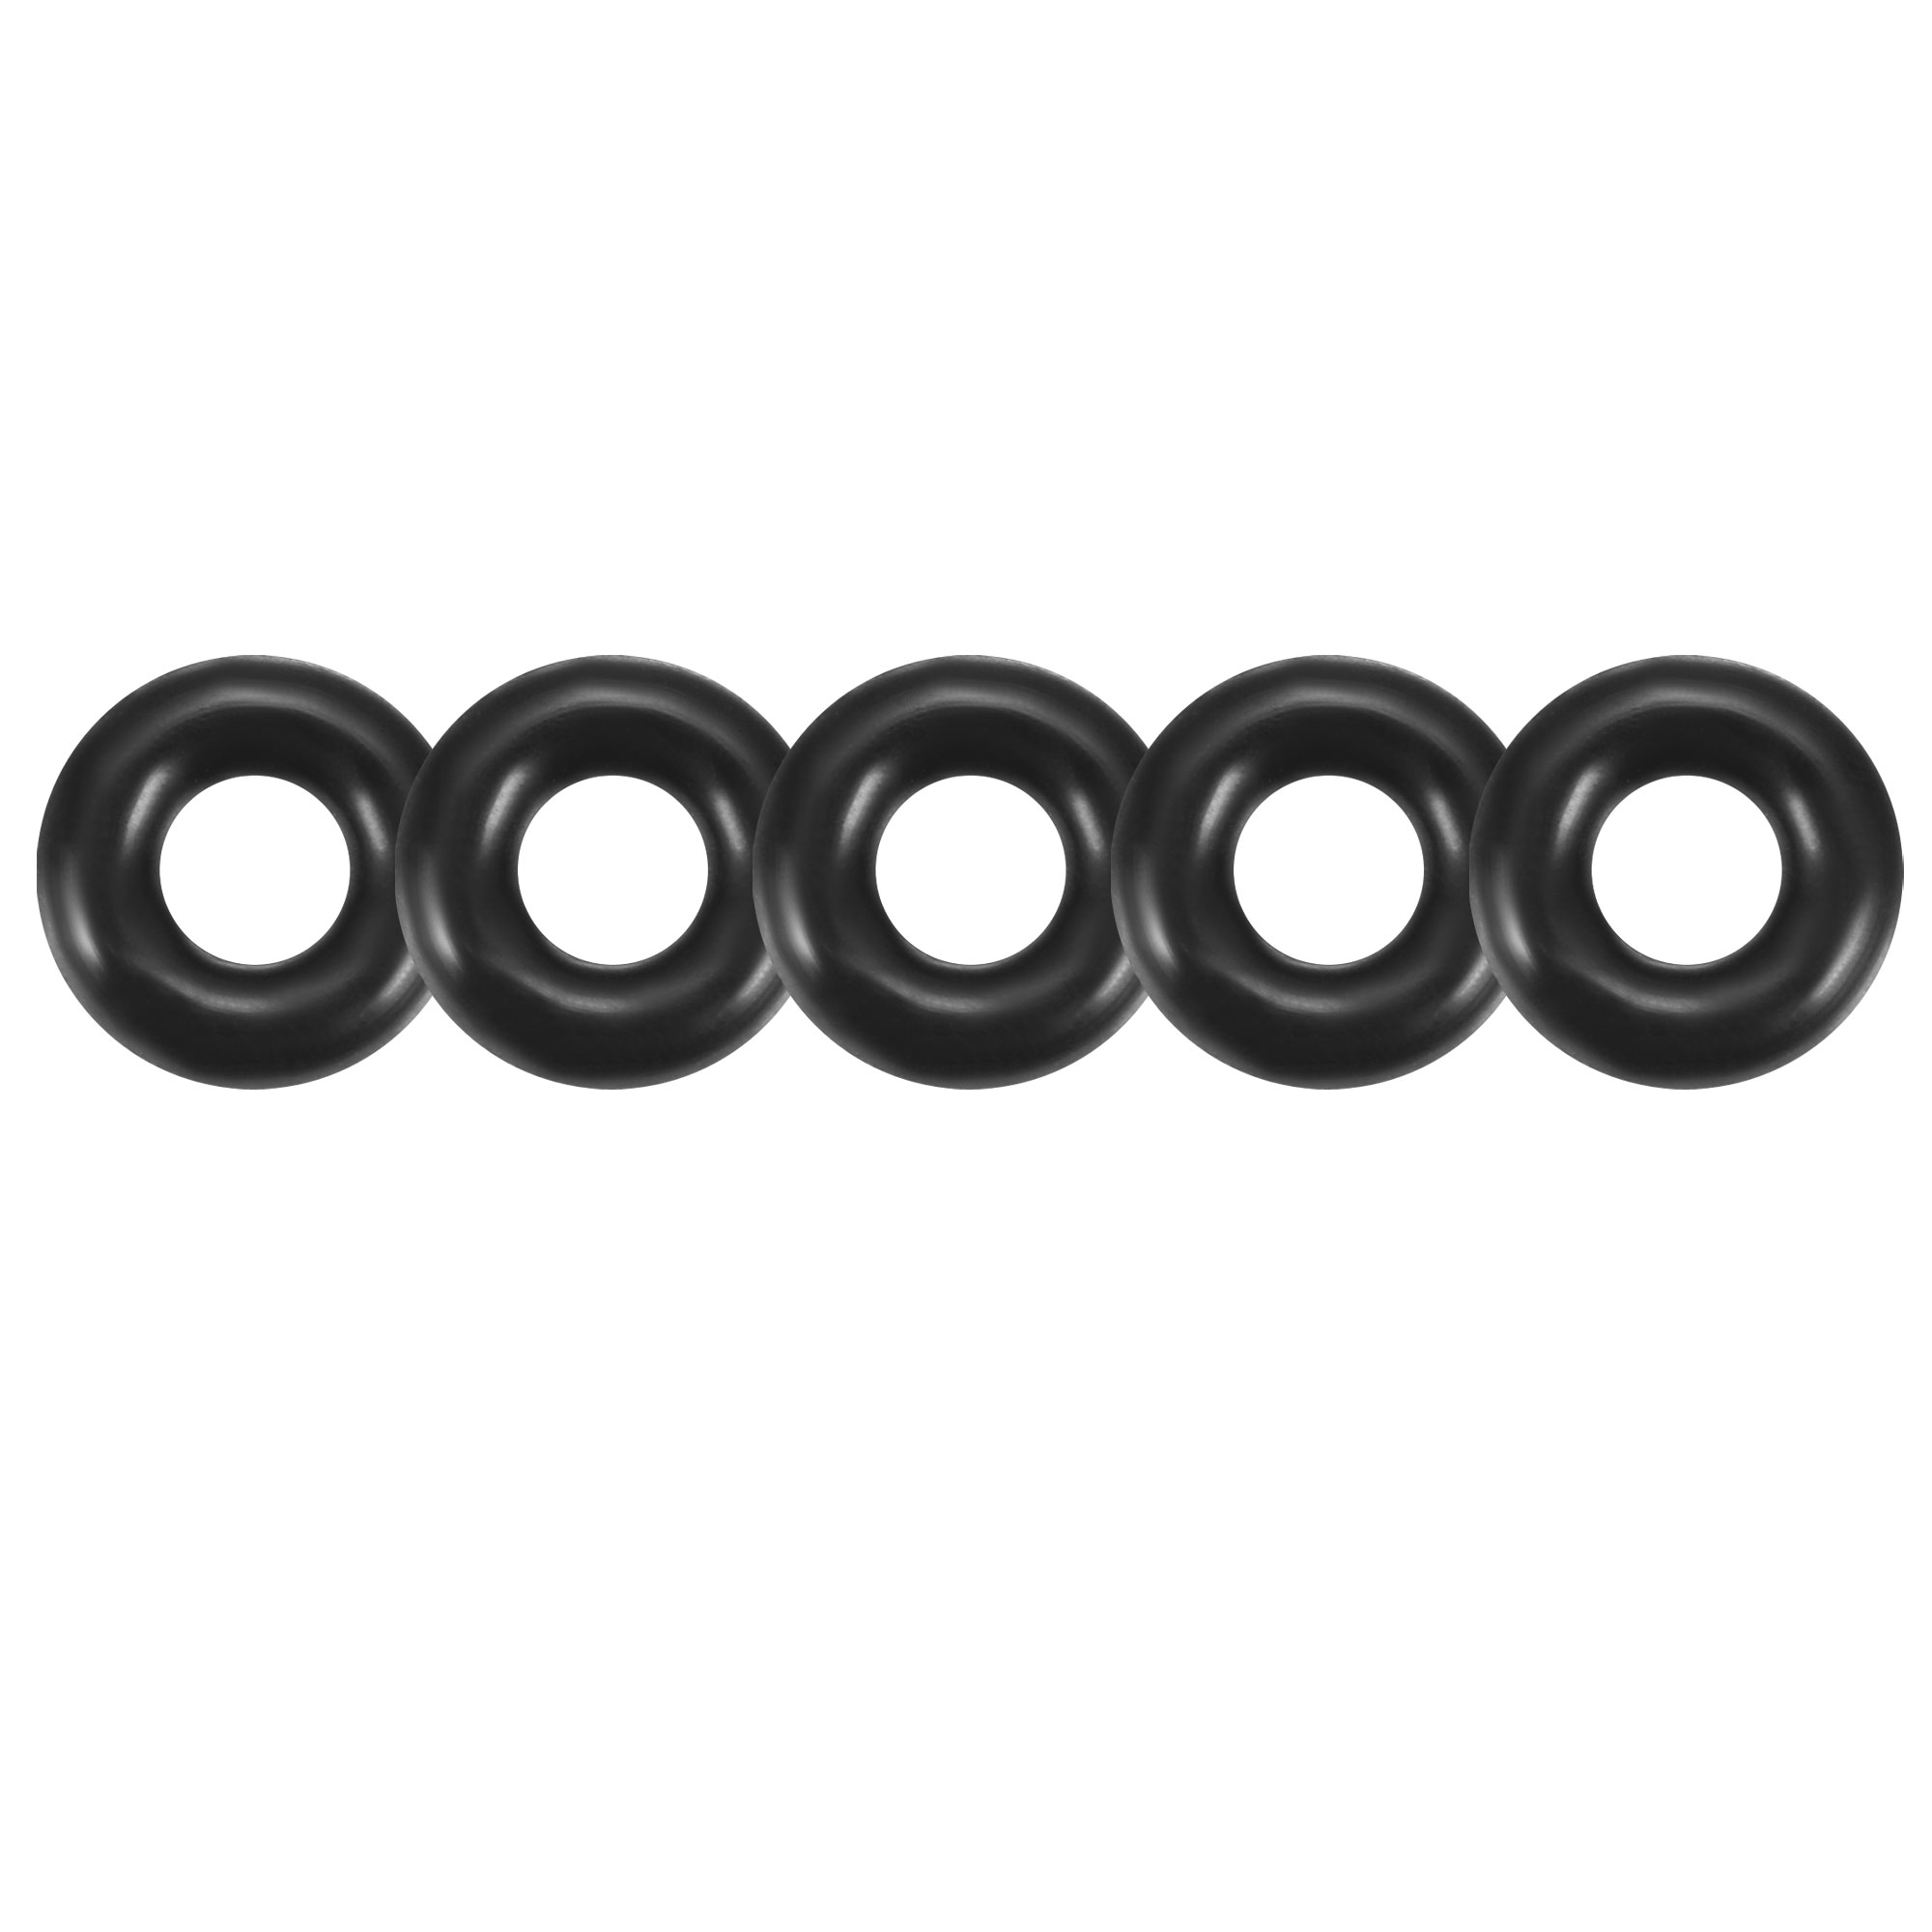 50pcs Black Round Nitrile Butadiene Rubber NBR O-Ring 6.5mm OD 1.9mm Width